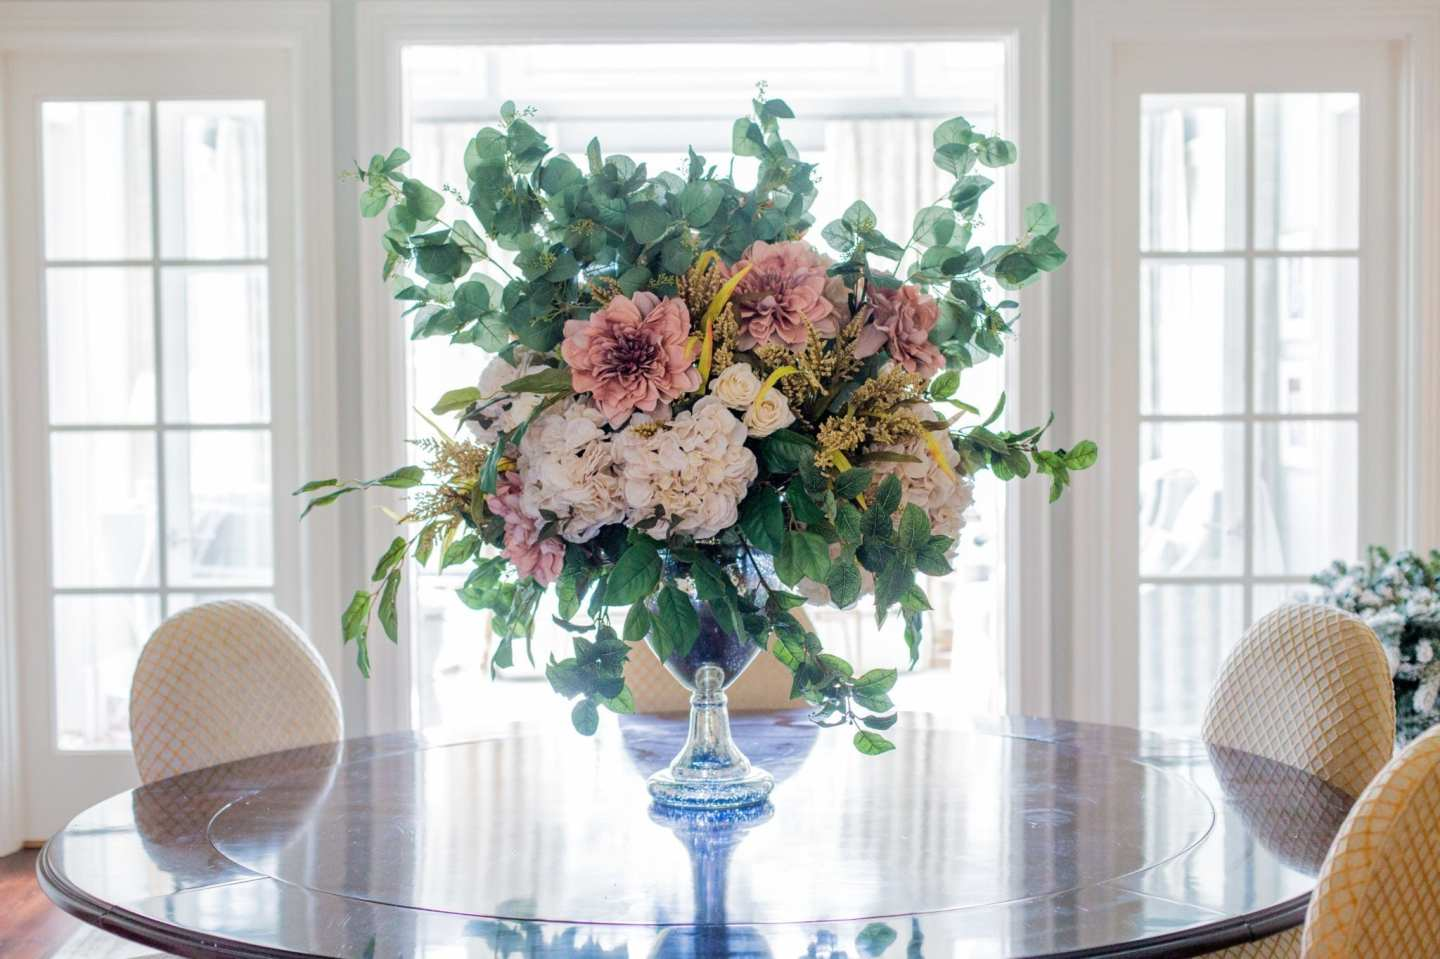 How to make large silk flower arrangements.